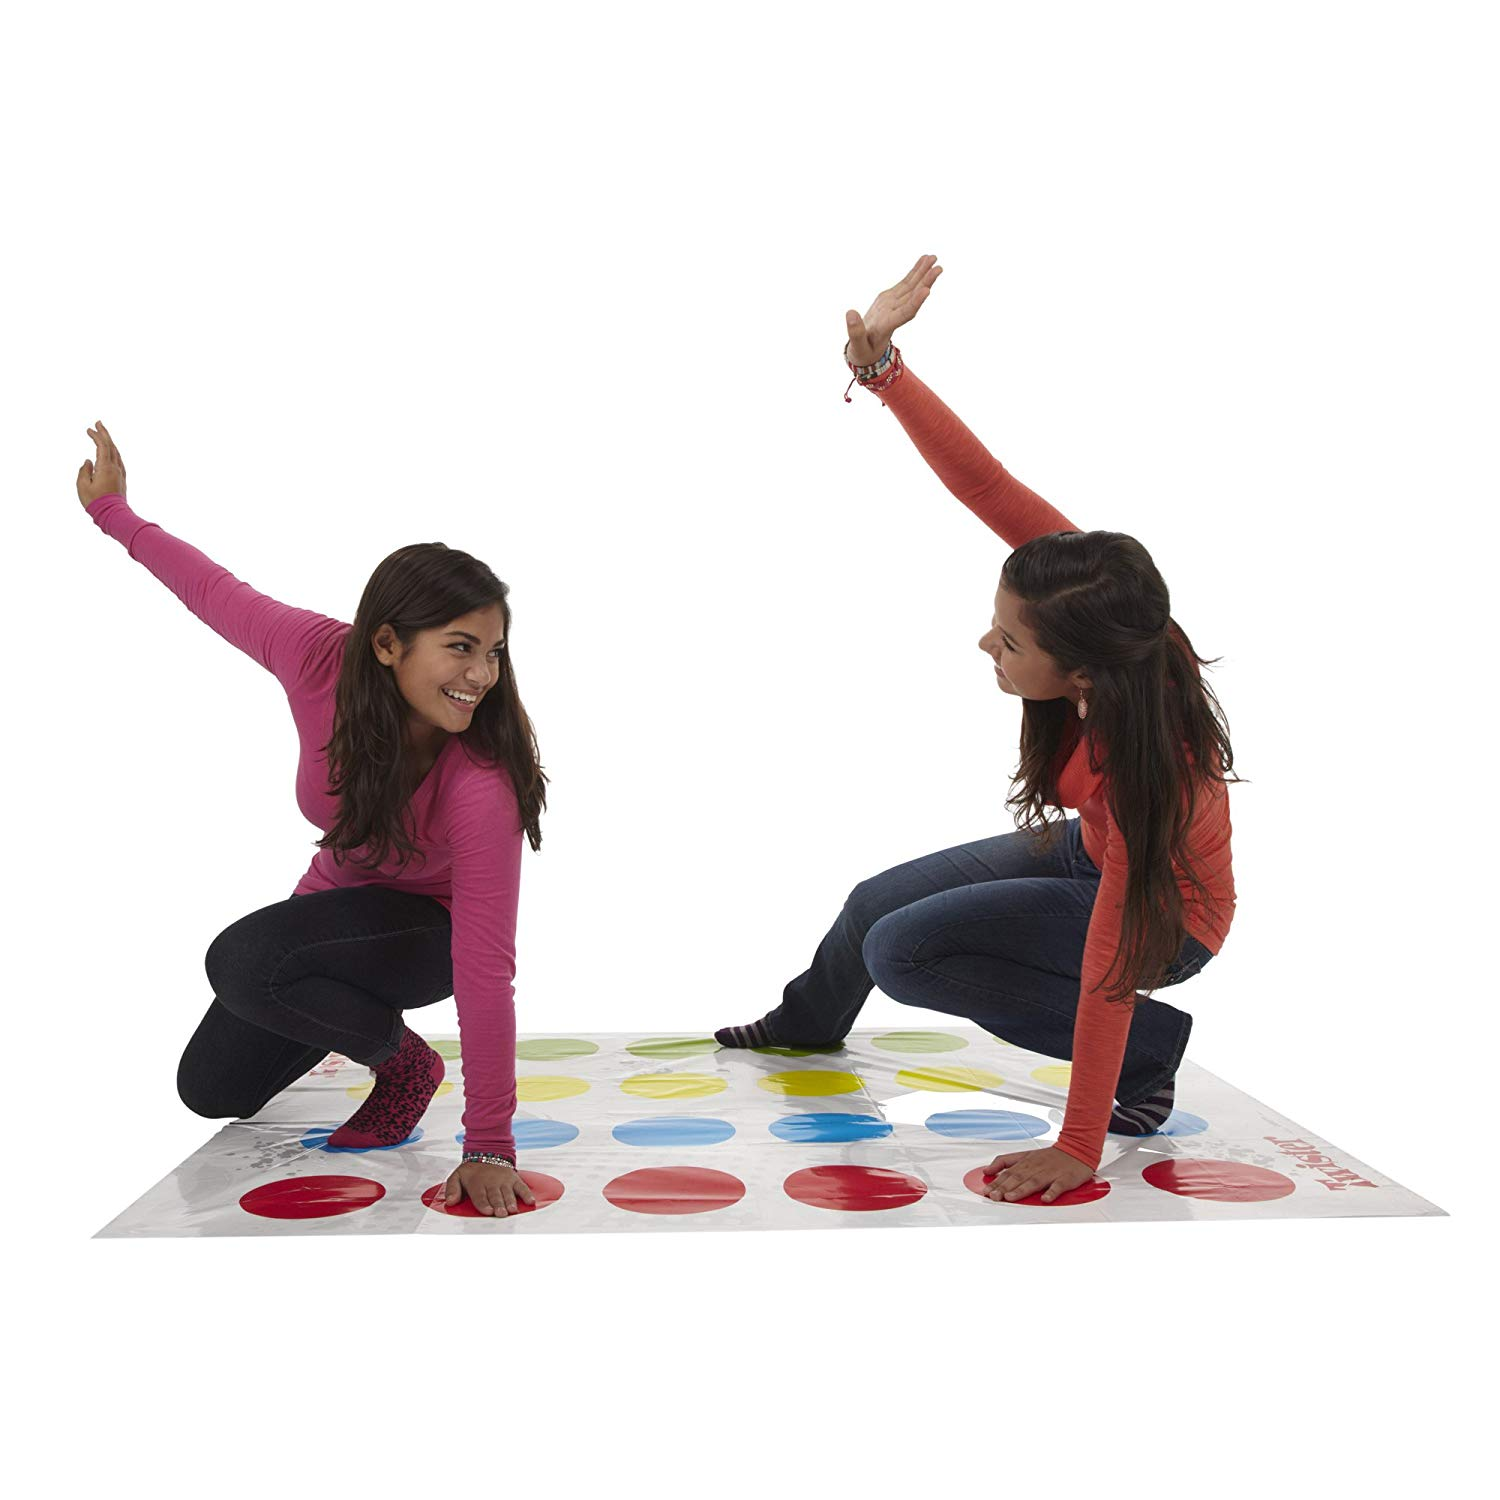 playing Twister (EA)